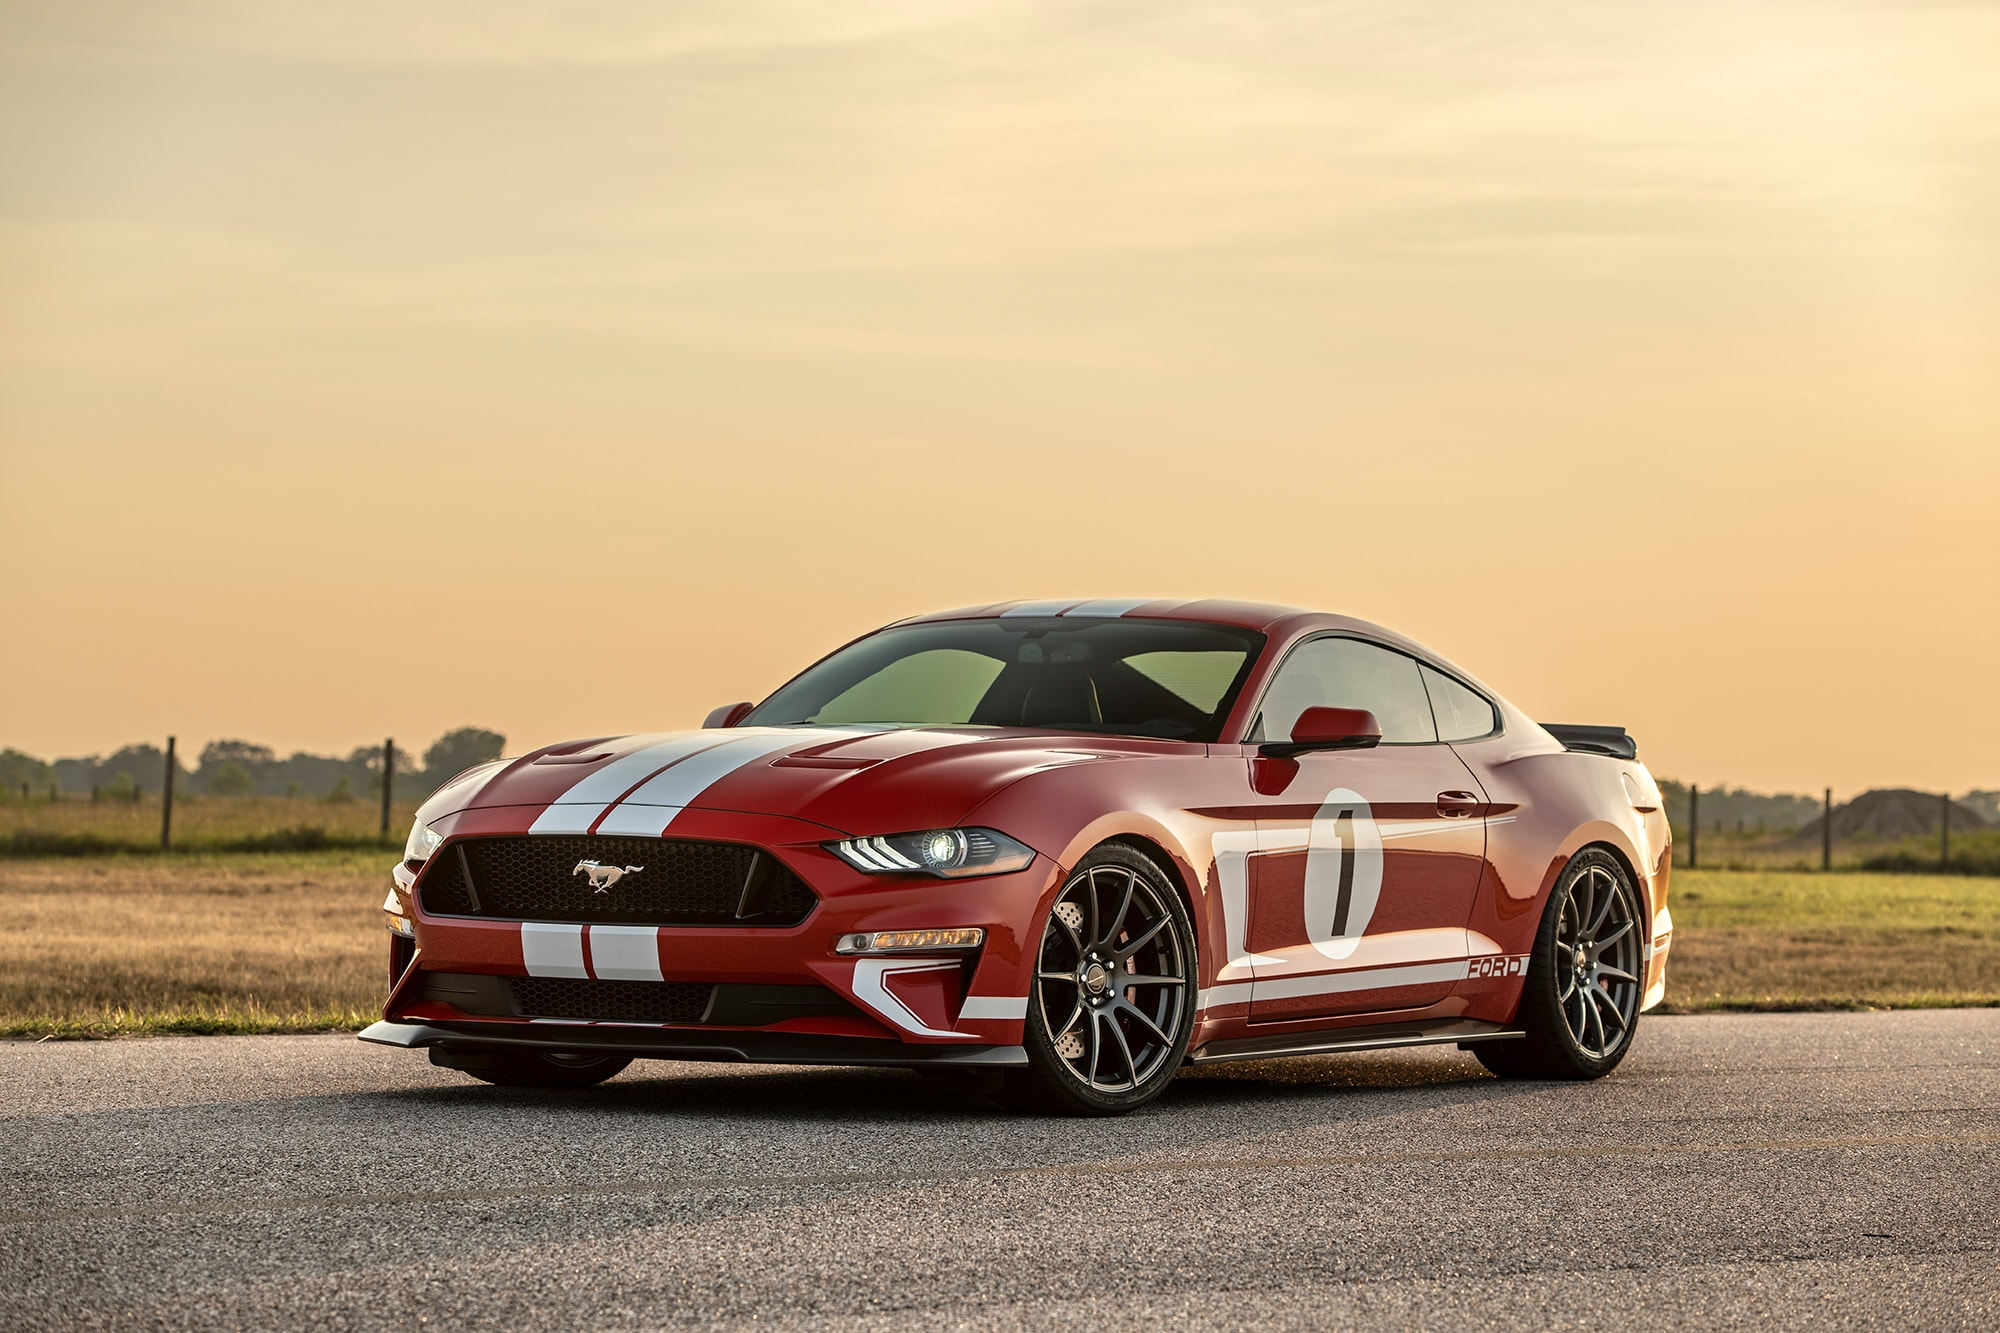 Hennessey Celebrates 10,000th Vehicle Built With The Heritage Edition Mustang - autoevolution